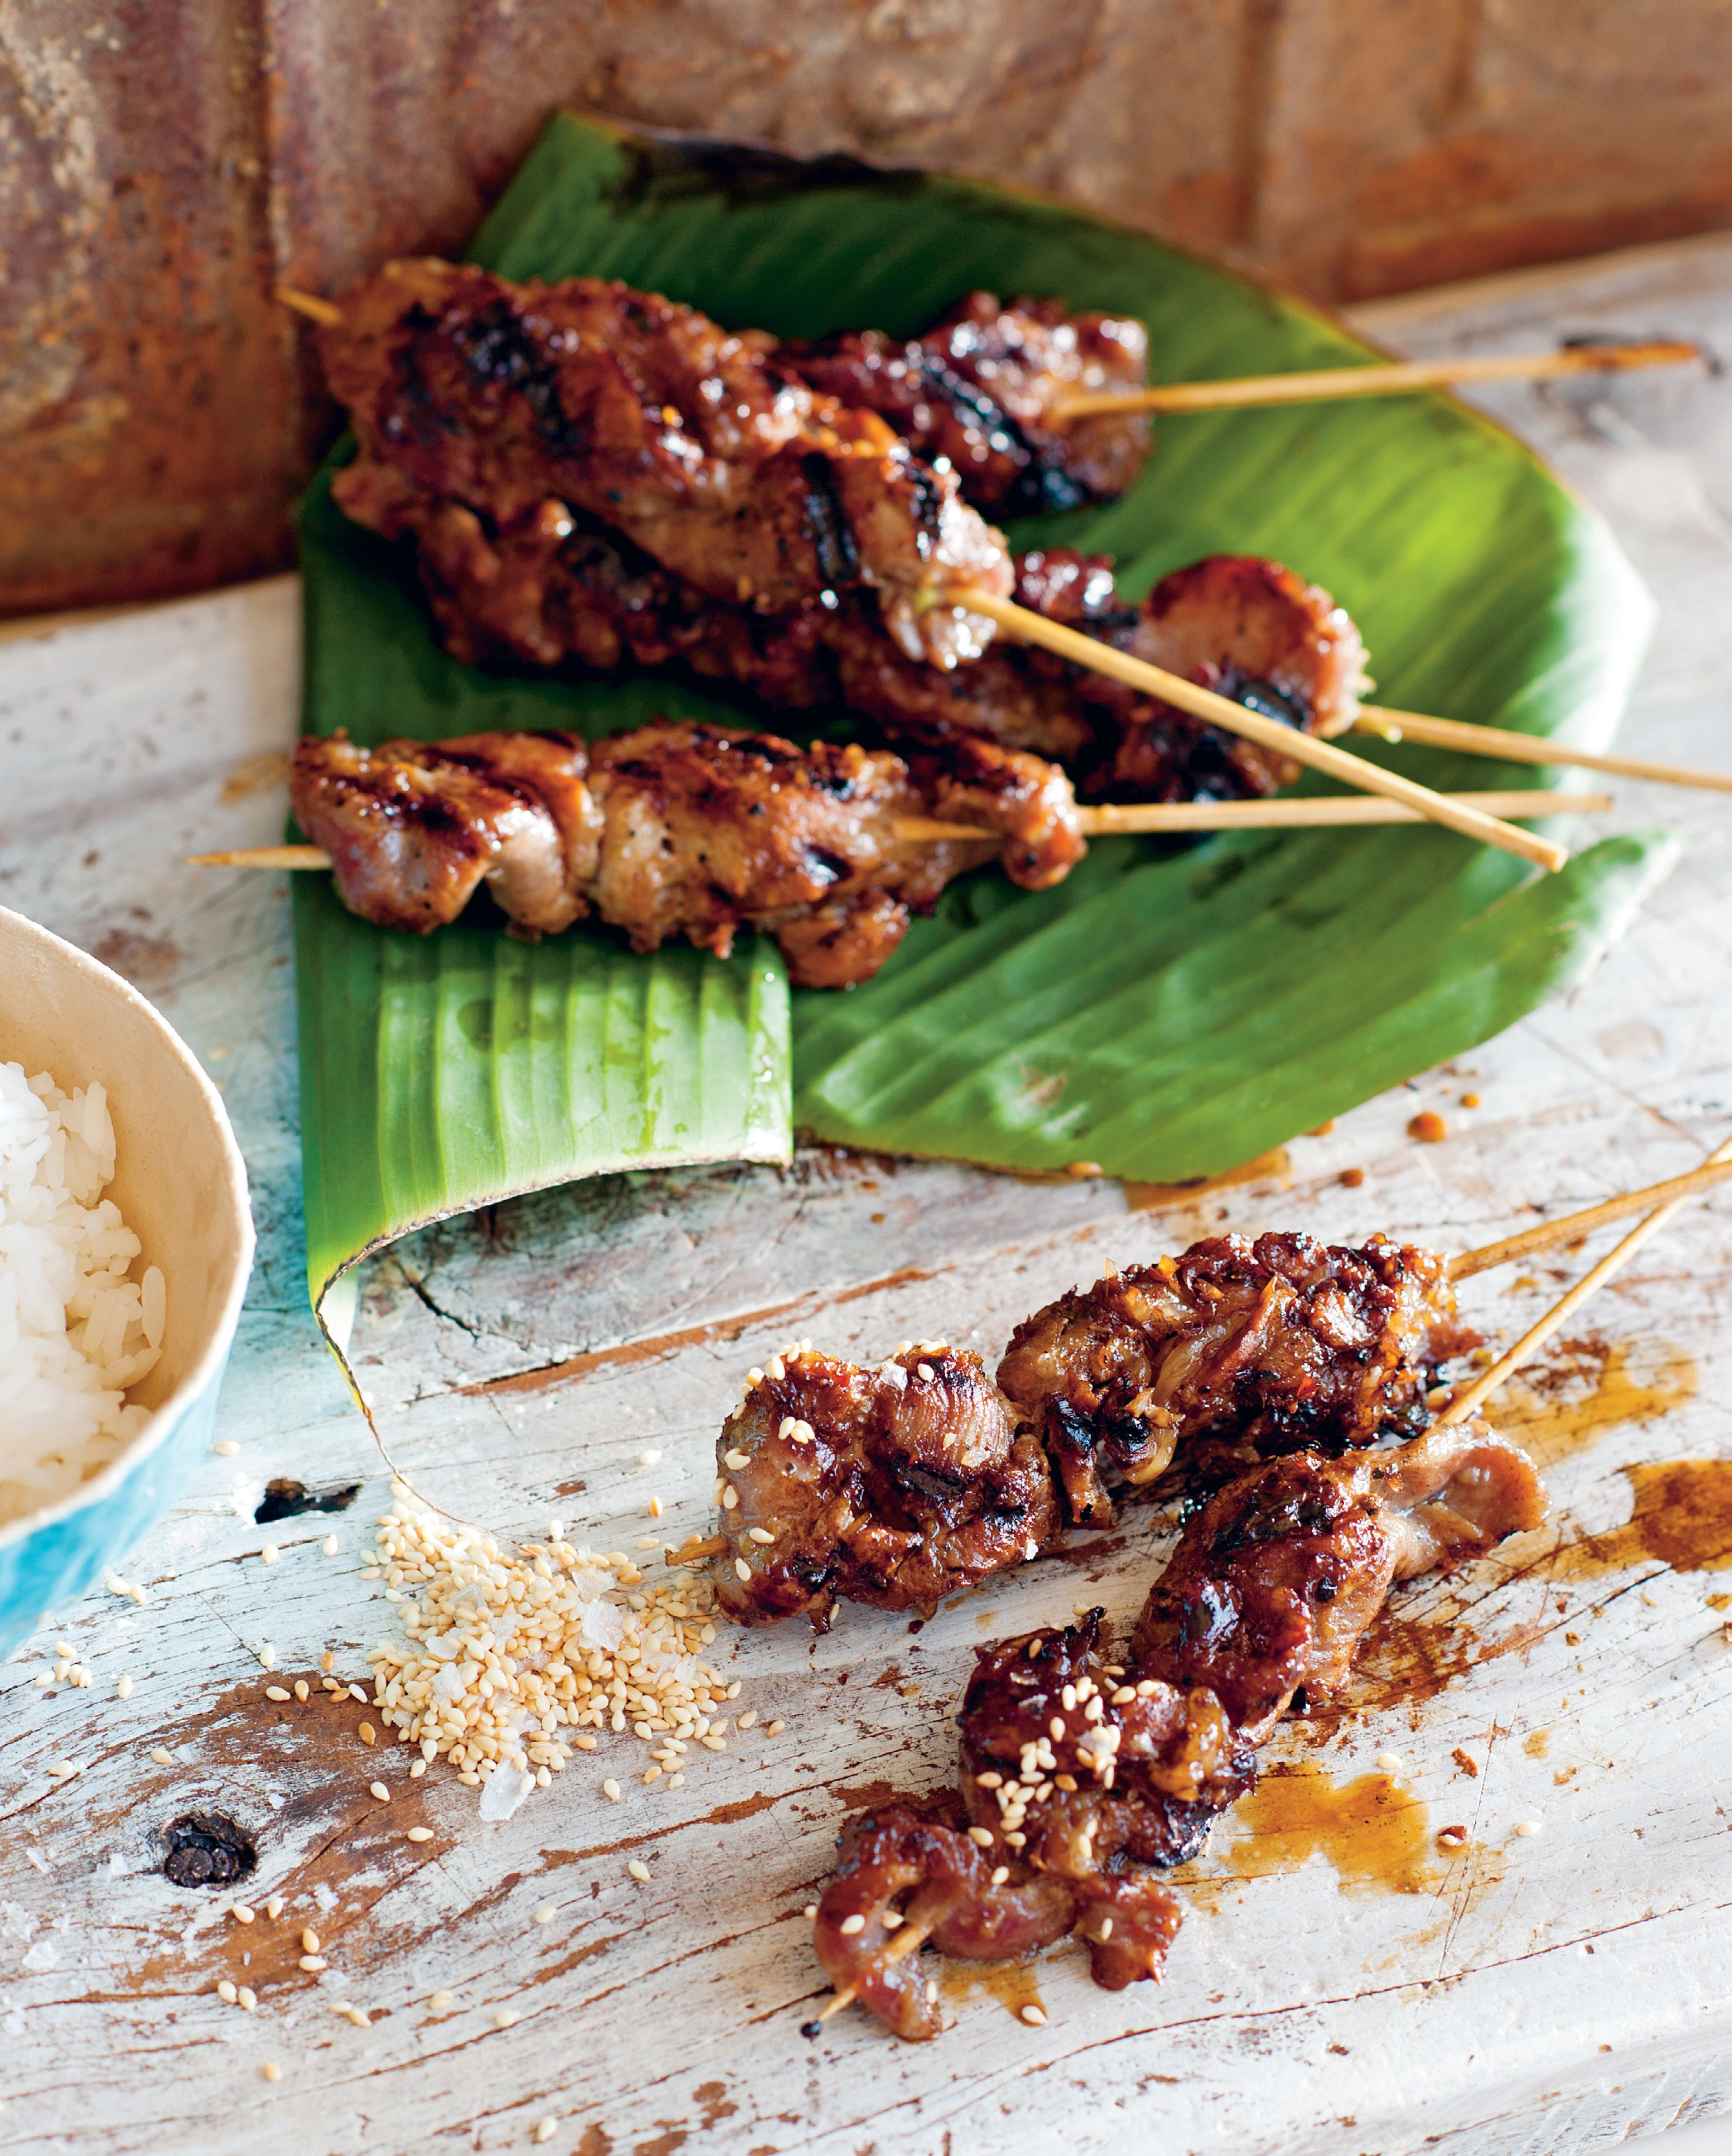 Chargrilled Hmong black pig skewers with sesame salt